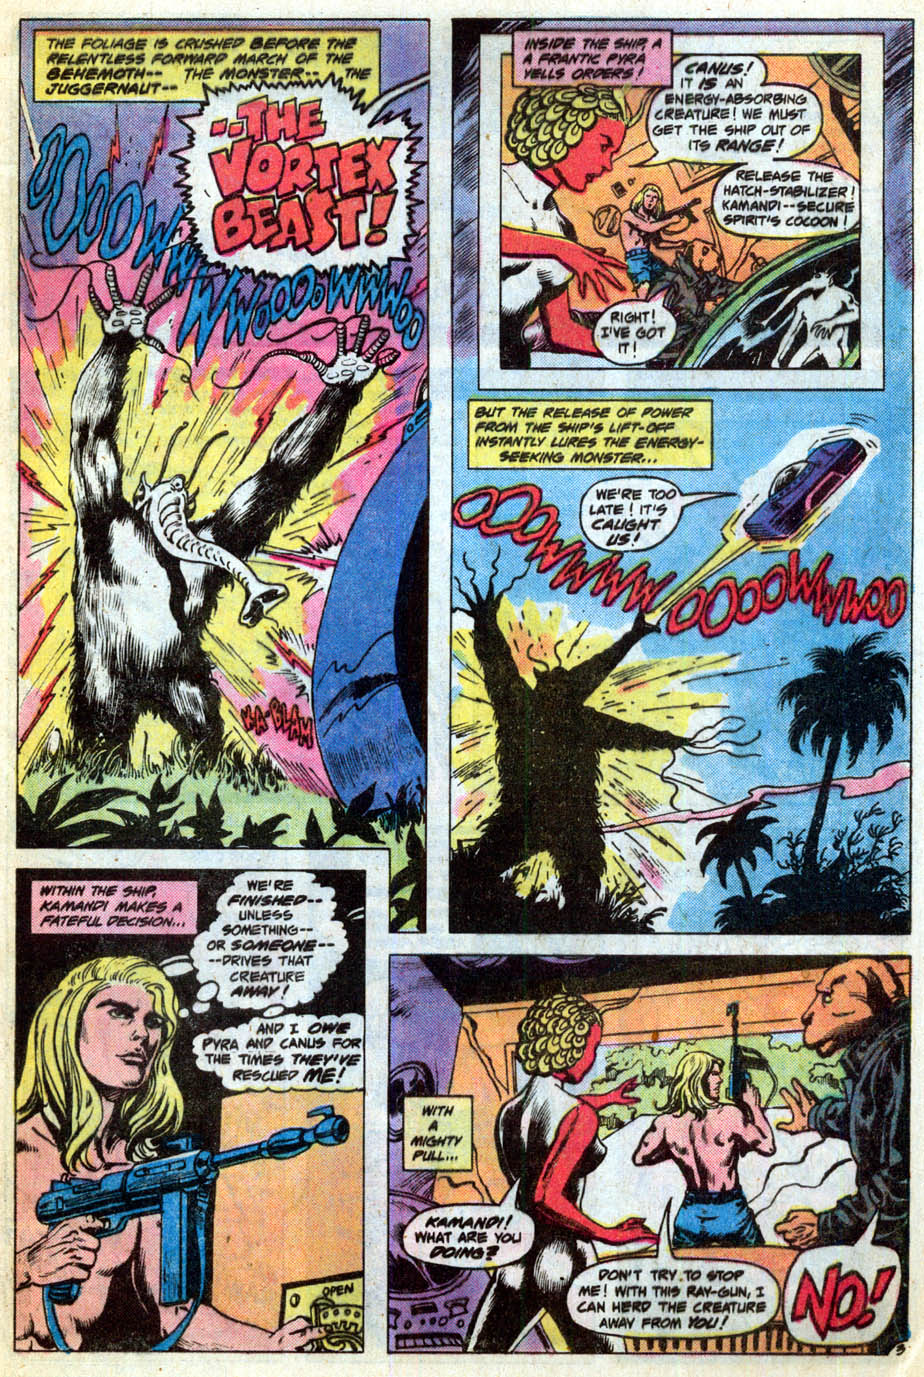 Kamandi, The Last Boy On Earth (1972) #55 pg.04, lettered by Clem Robins.